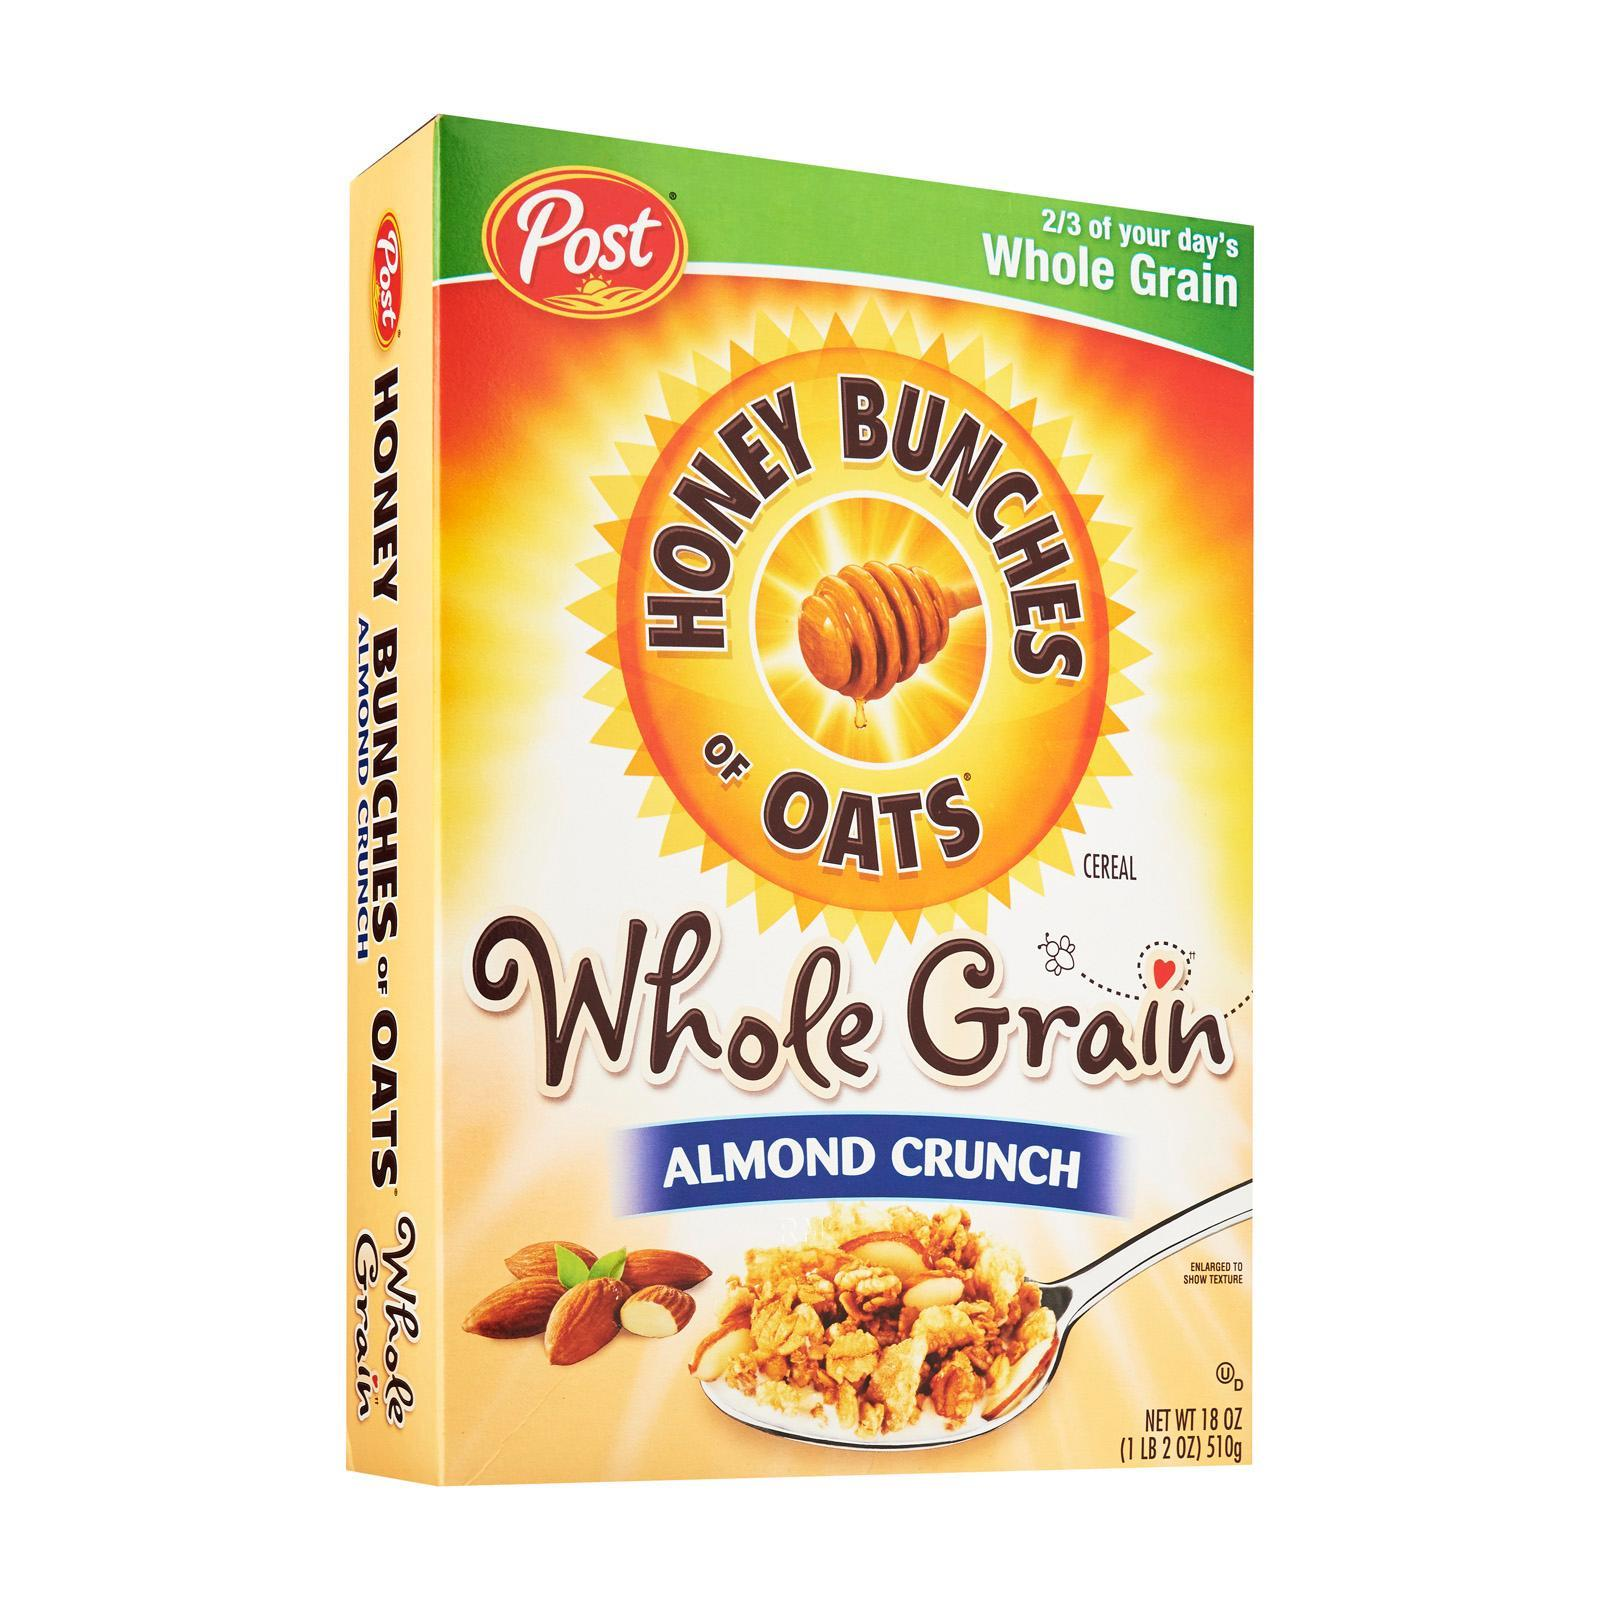 Post Honey Bunches Of Oats Wholegrain Almond Crunch Cereal